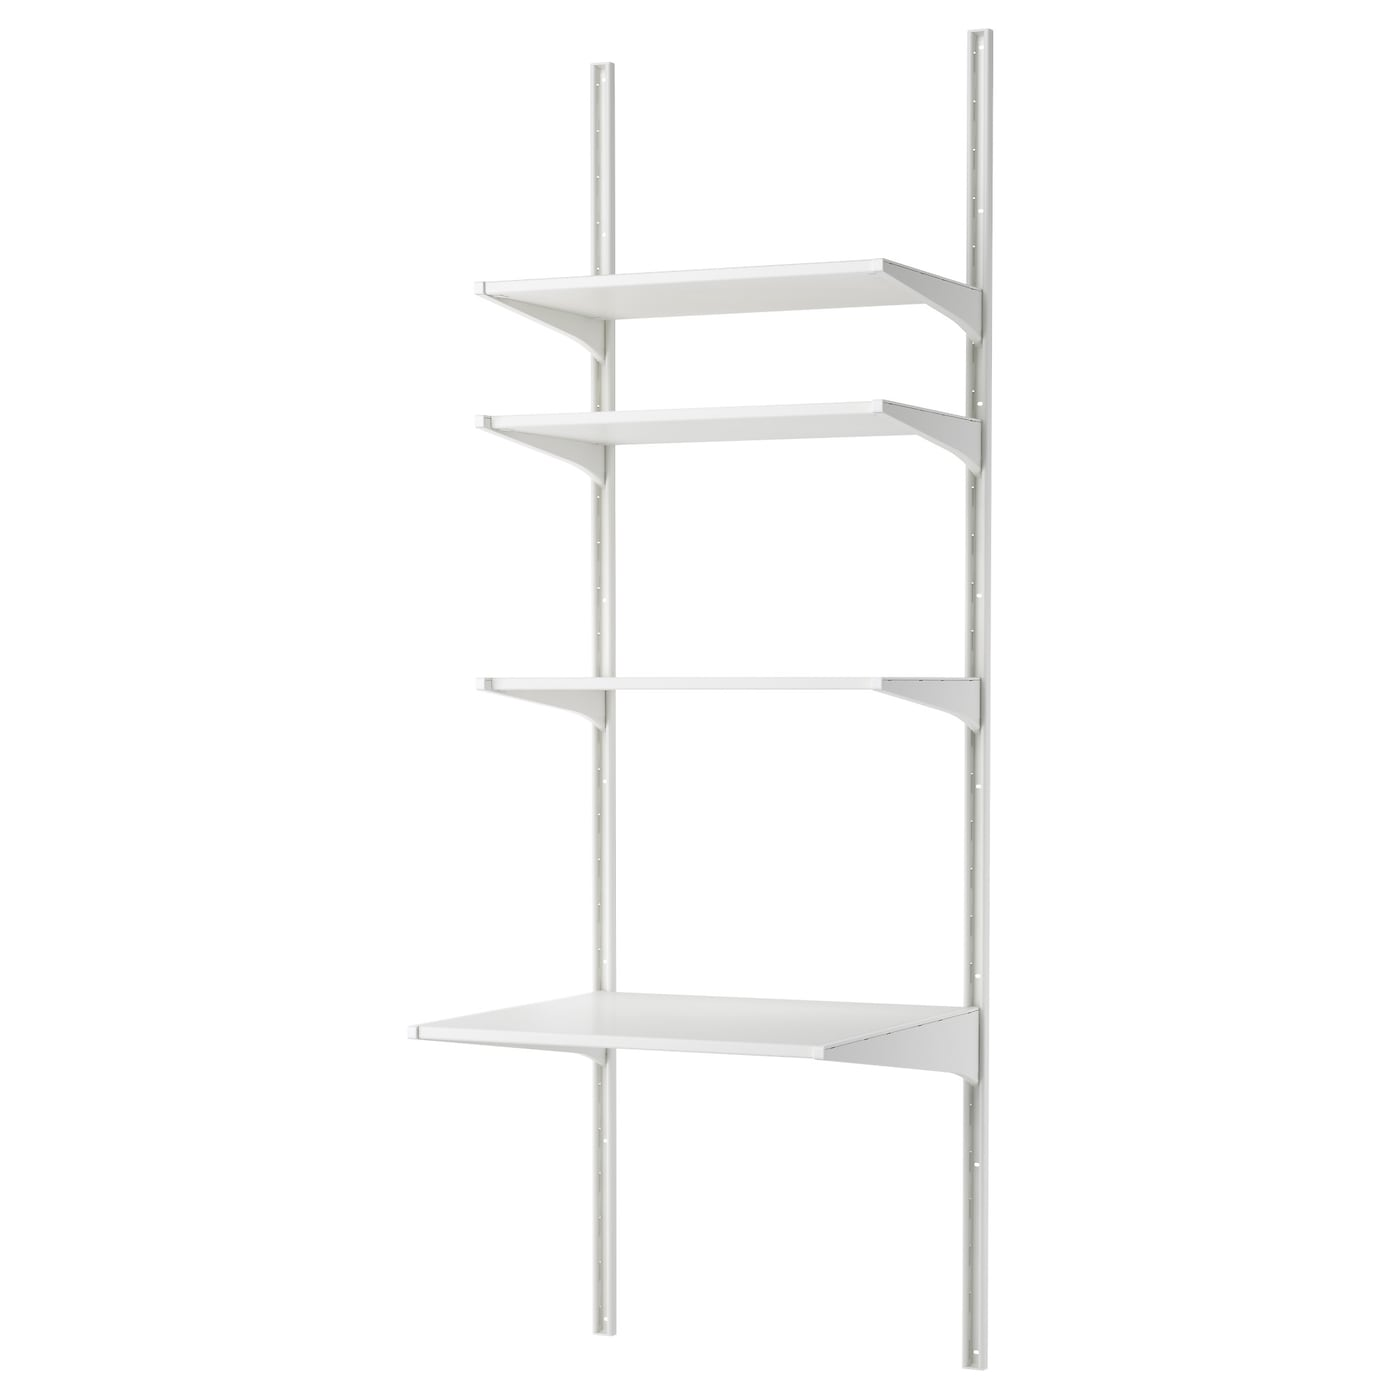 IKEA ALGOT wall upright/shelves Can also be used in bathrooms and other damp areas indoors.